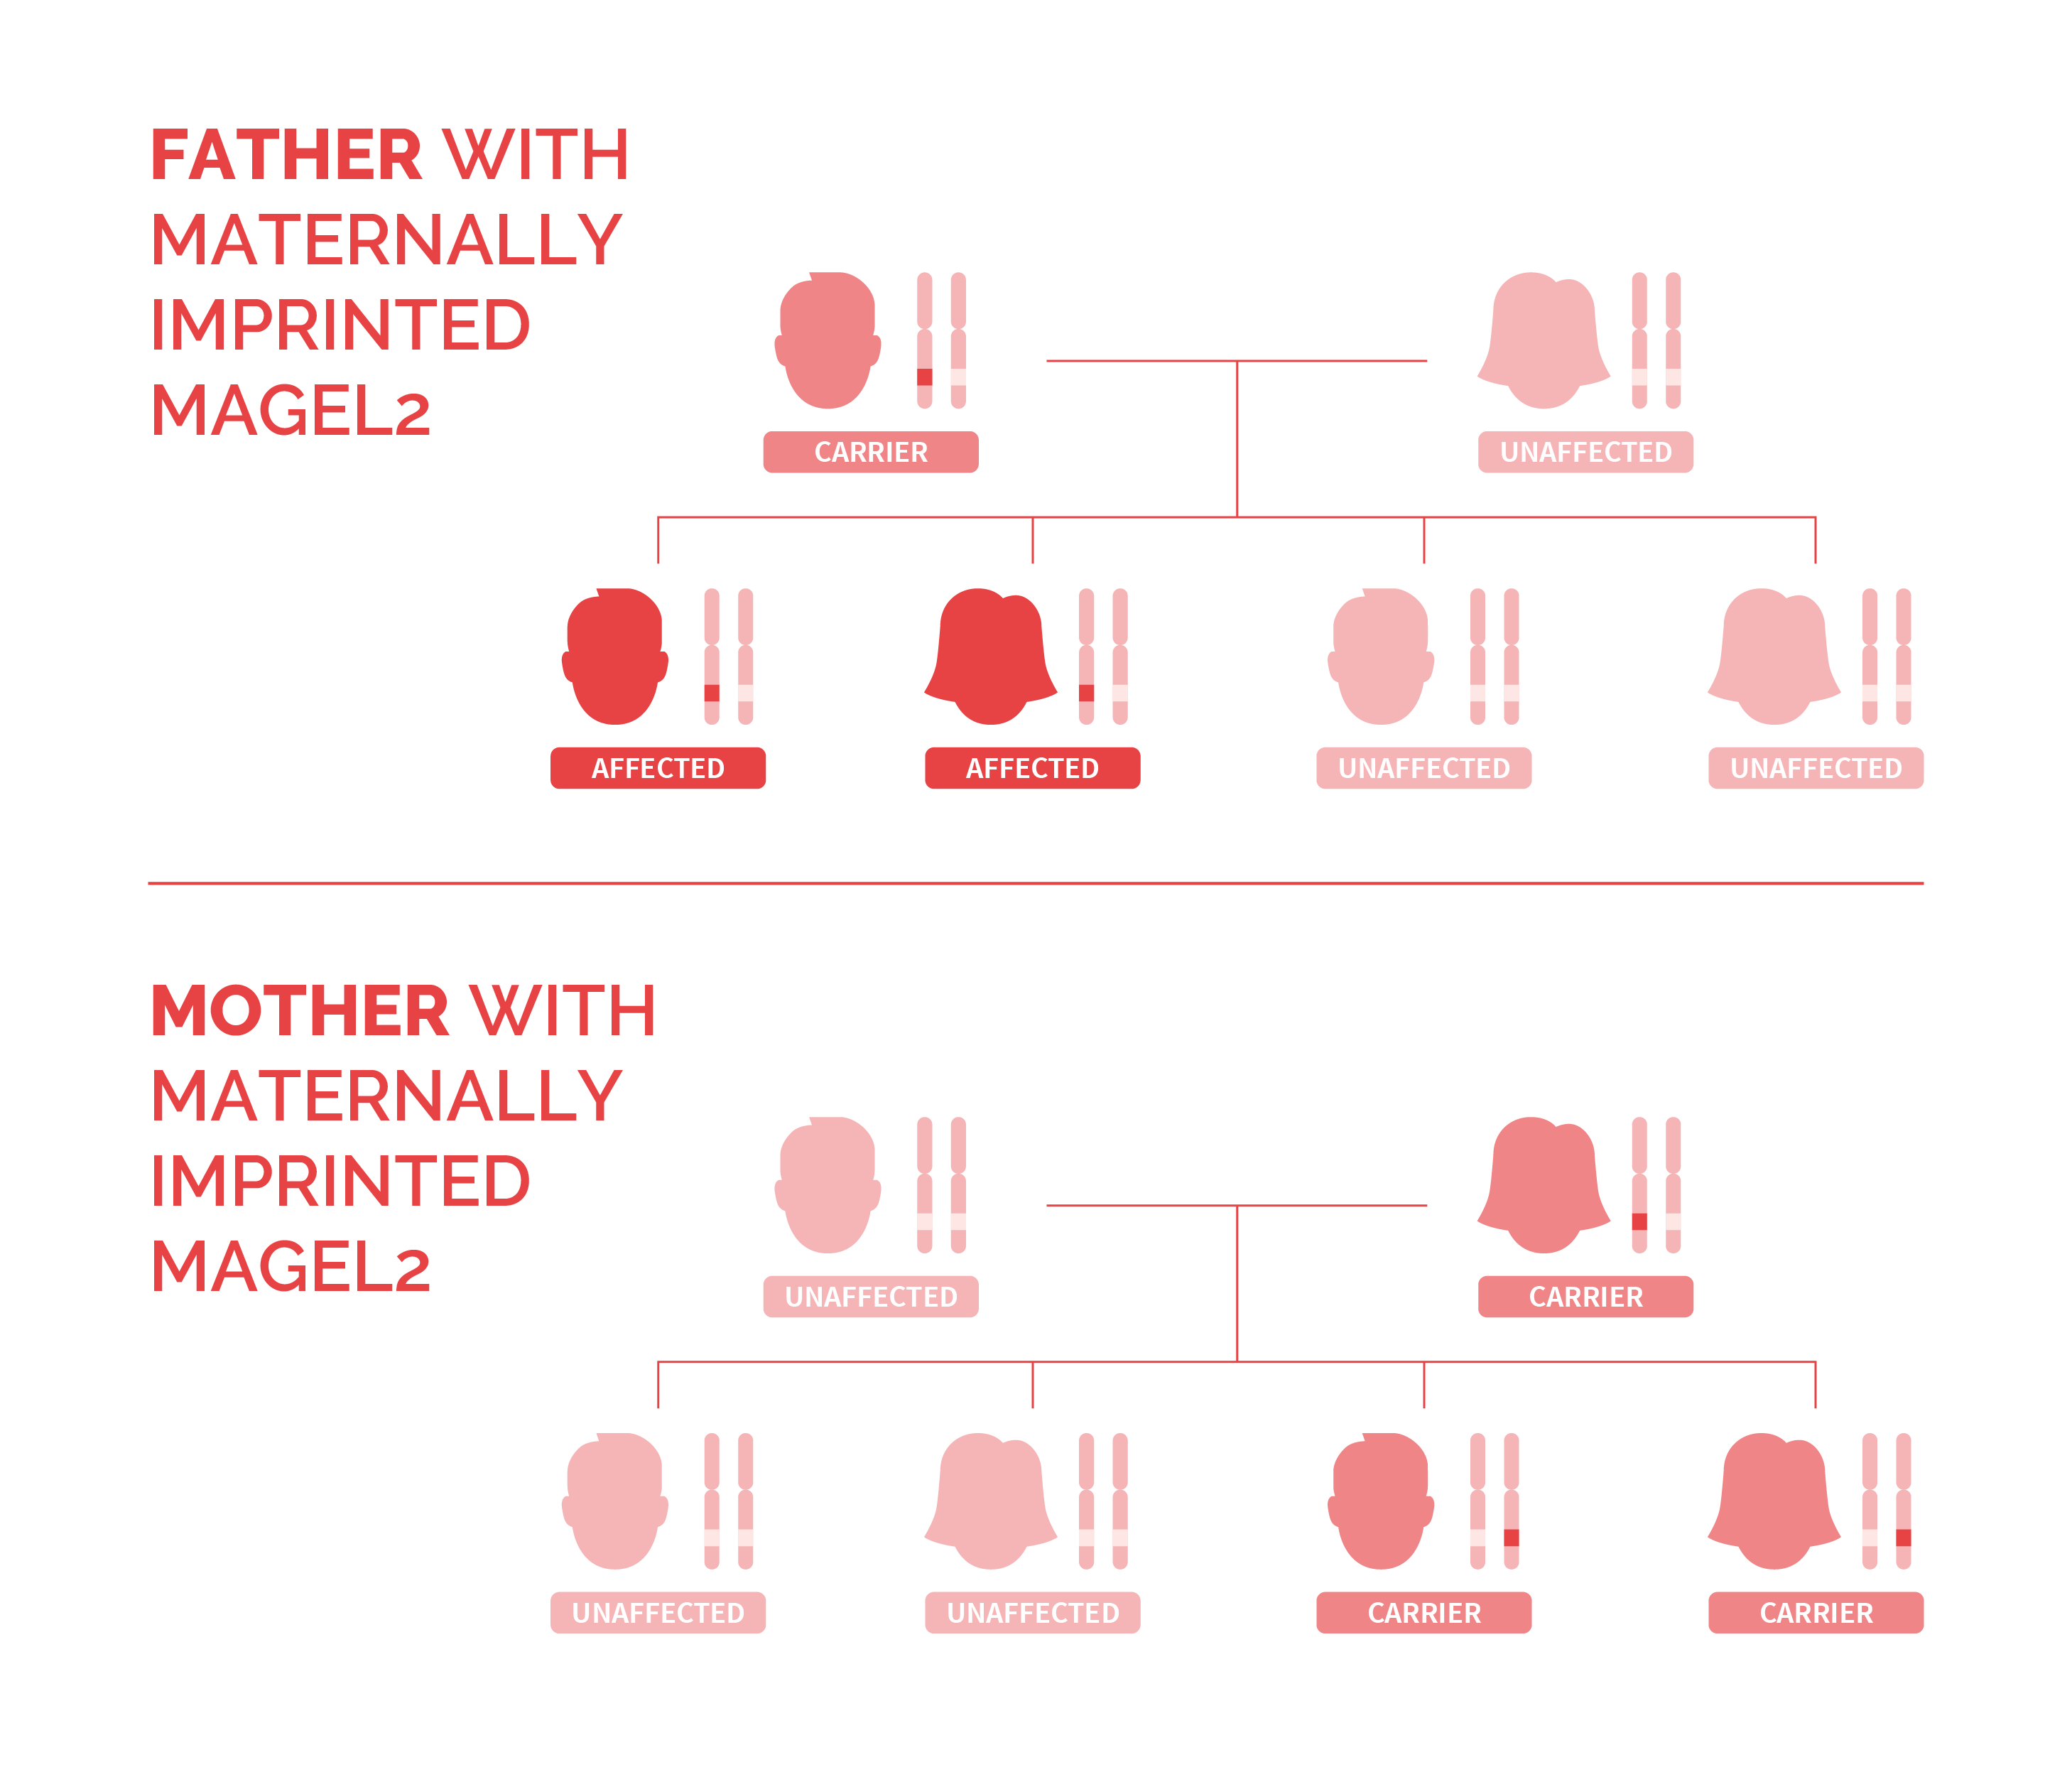 Two family trees showing the autosomal dominant inheritance pattern of Schaaf-Yang syndrome in each case of parents affected.